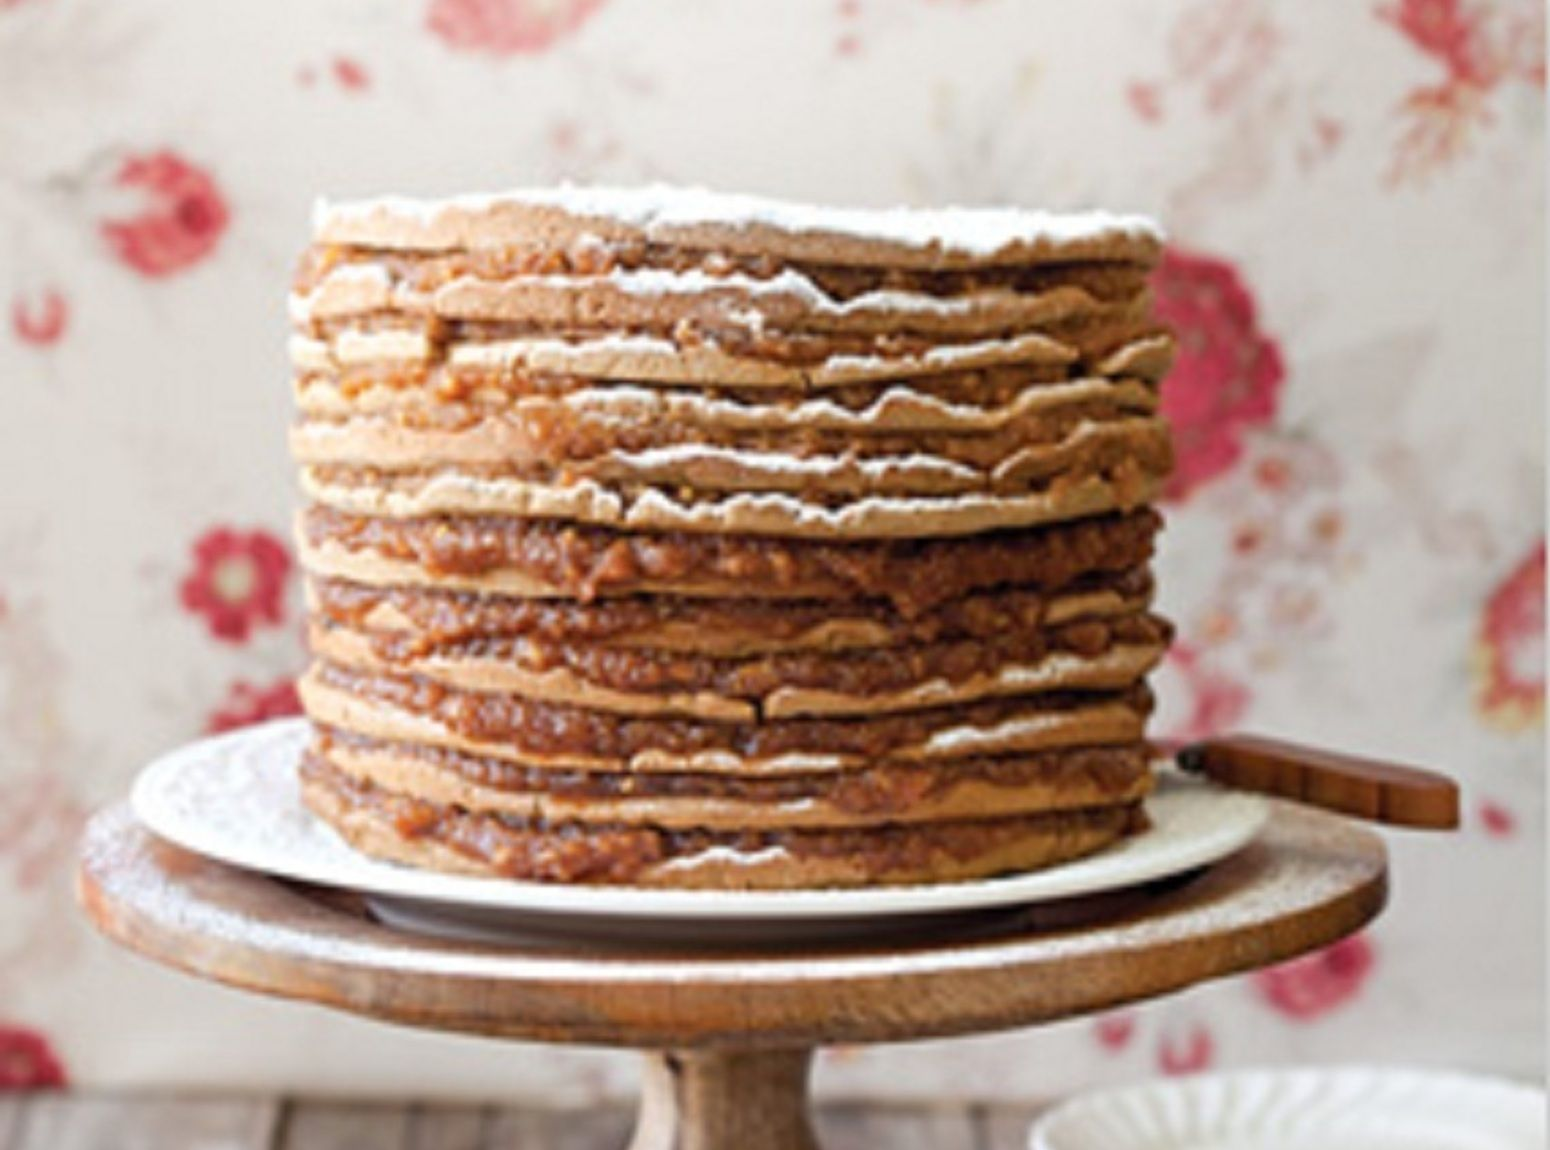 Yum... Id Pinch That! | Old-Fashioned Stack Cake with Appalachian Apple Butter Filling  This Apple Butter Stack Cake was a tradition in my family for over 100 years and I had the recipe from my Grandmother and lost it. Thank God I found it. This is the one. There's also an Apple Sauce stack cake but I don't know if it's the same as this one. I wanted to share. PEACE